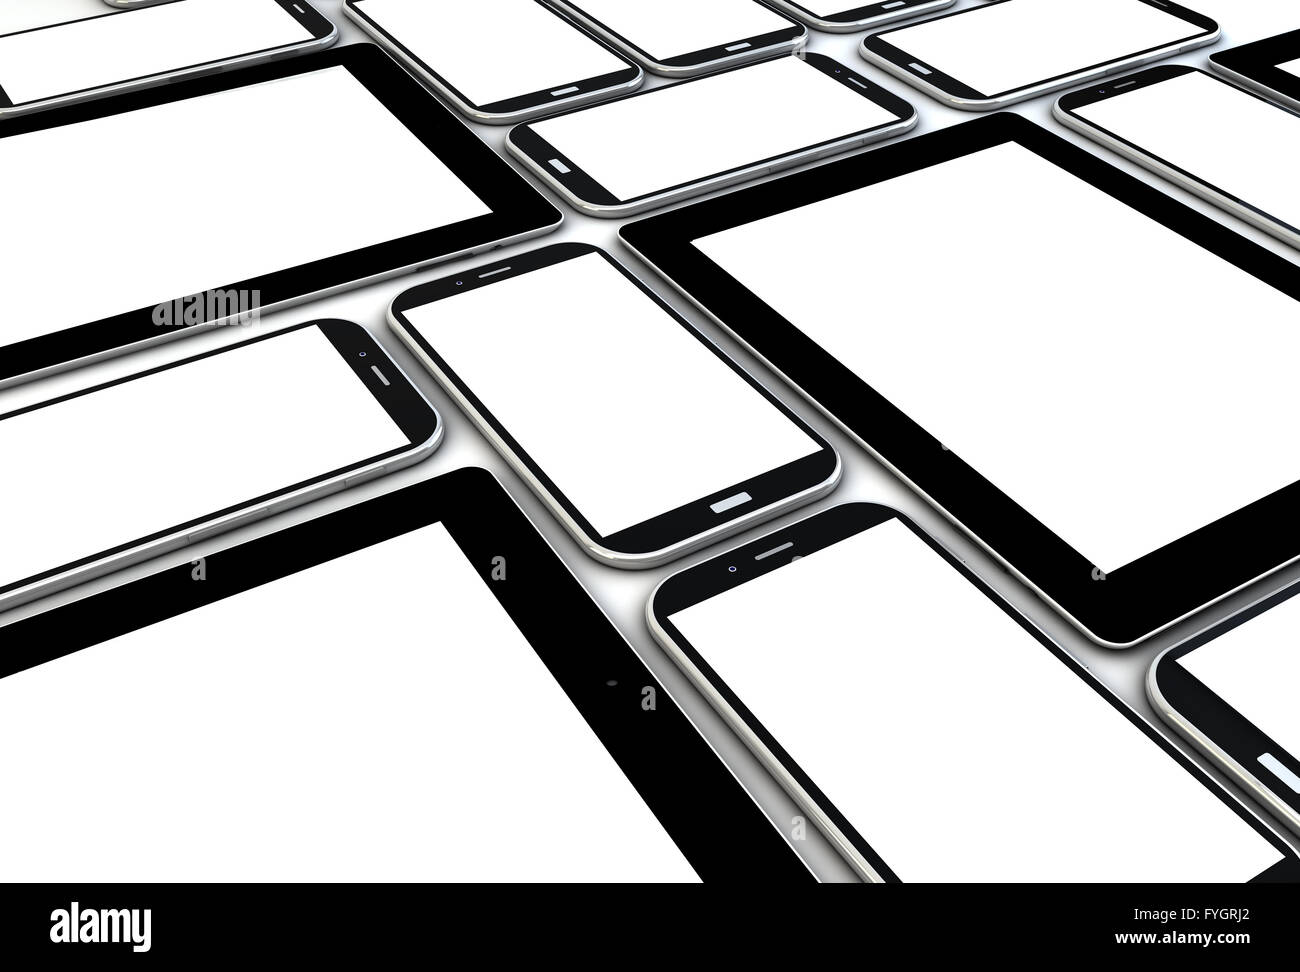 devices collection with blank screens - Stock Image